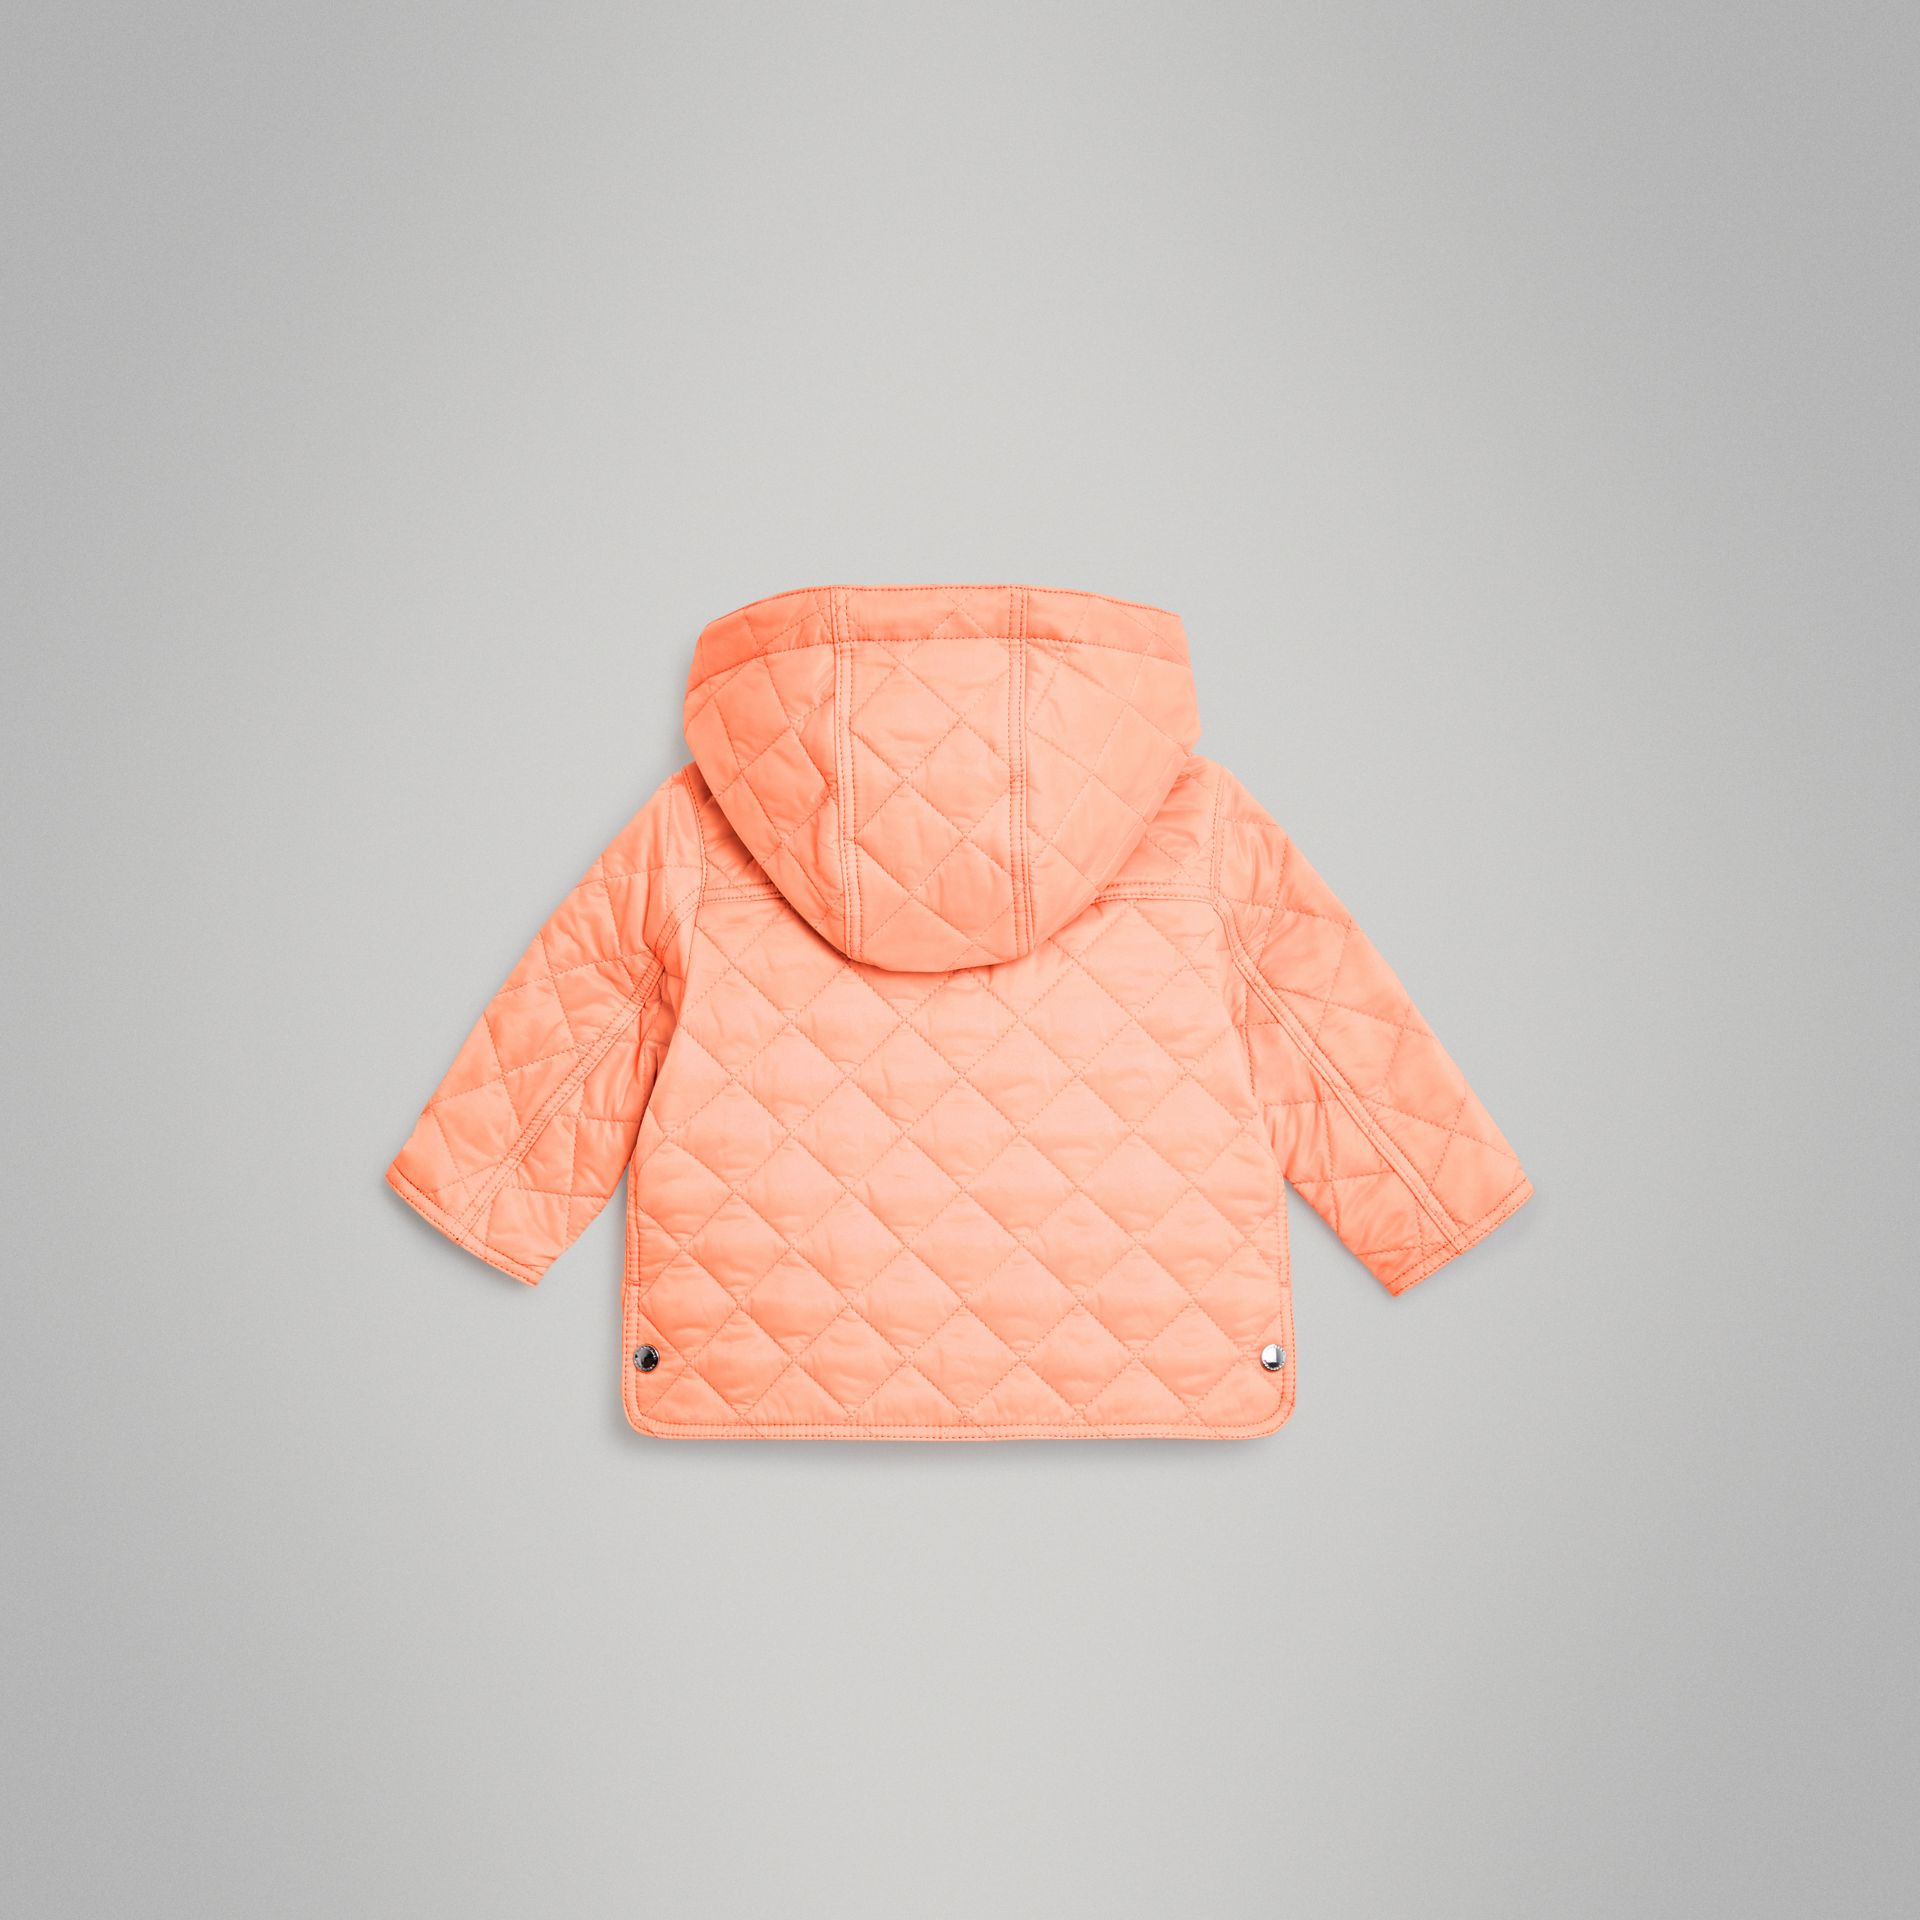 Diamond Quilted Hooded Jacket in Apricot Pink - Children | Burberry United Kingdom - gallery image 3